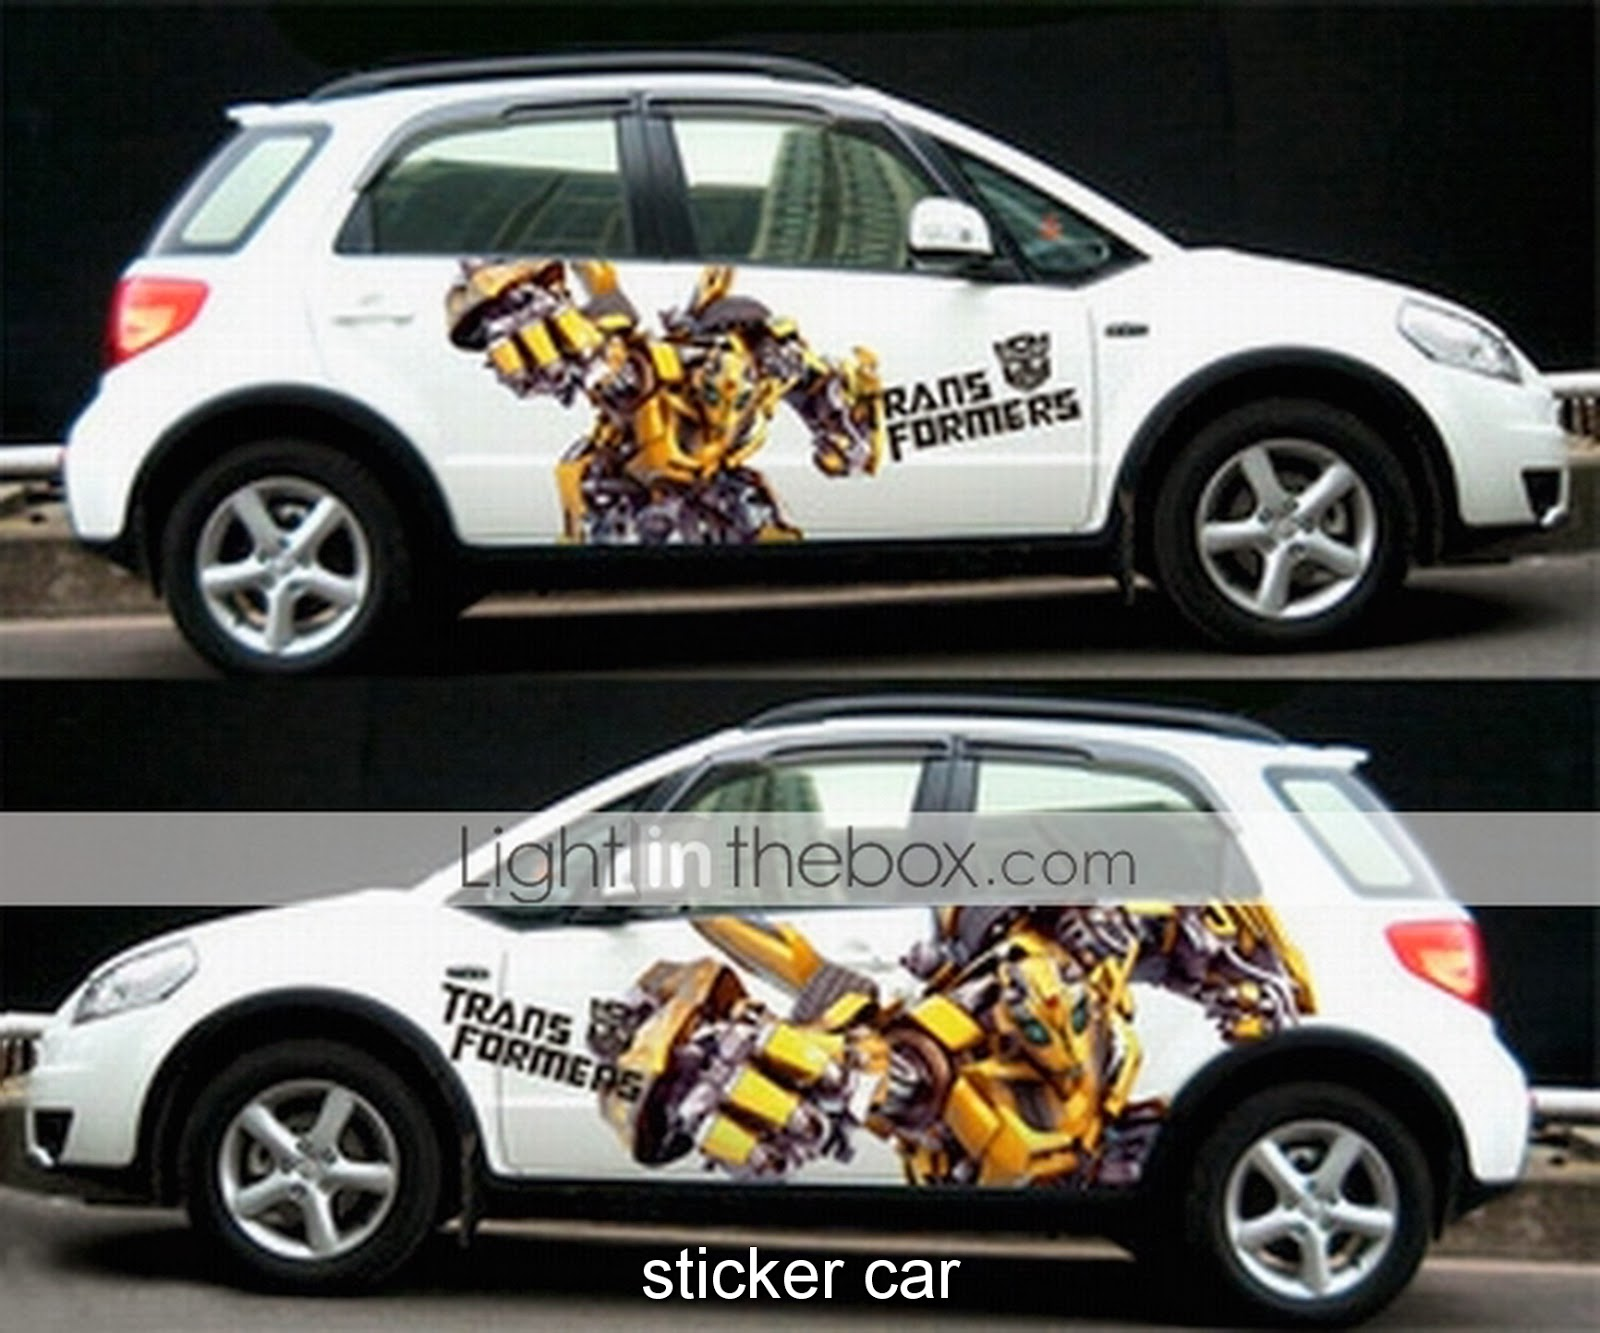 Car Stickers And You - Stickers for the car